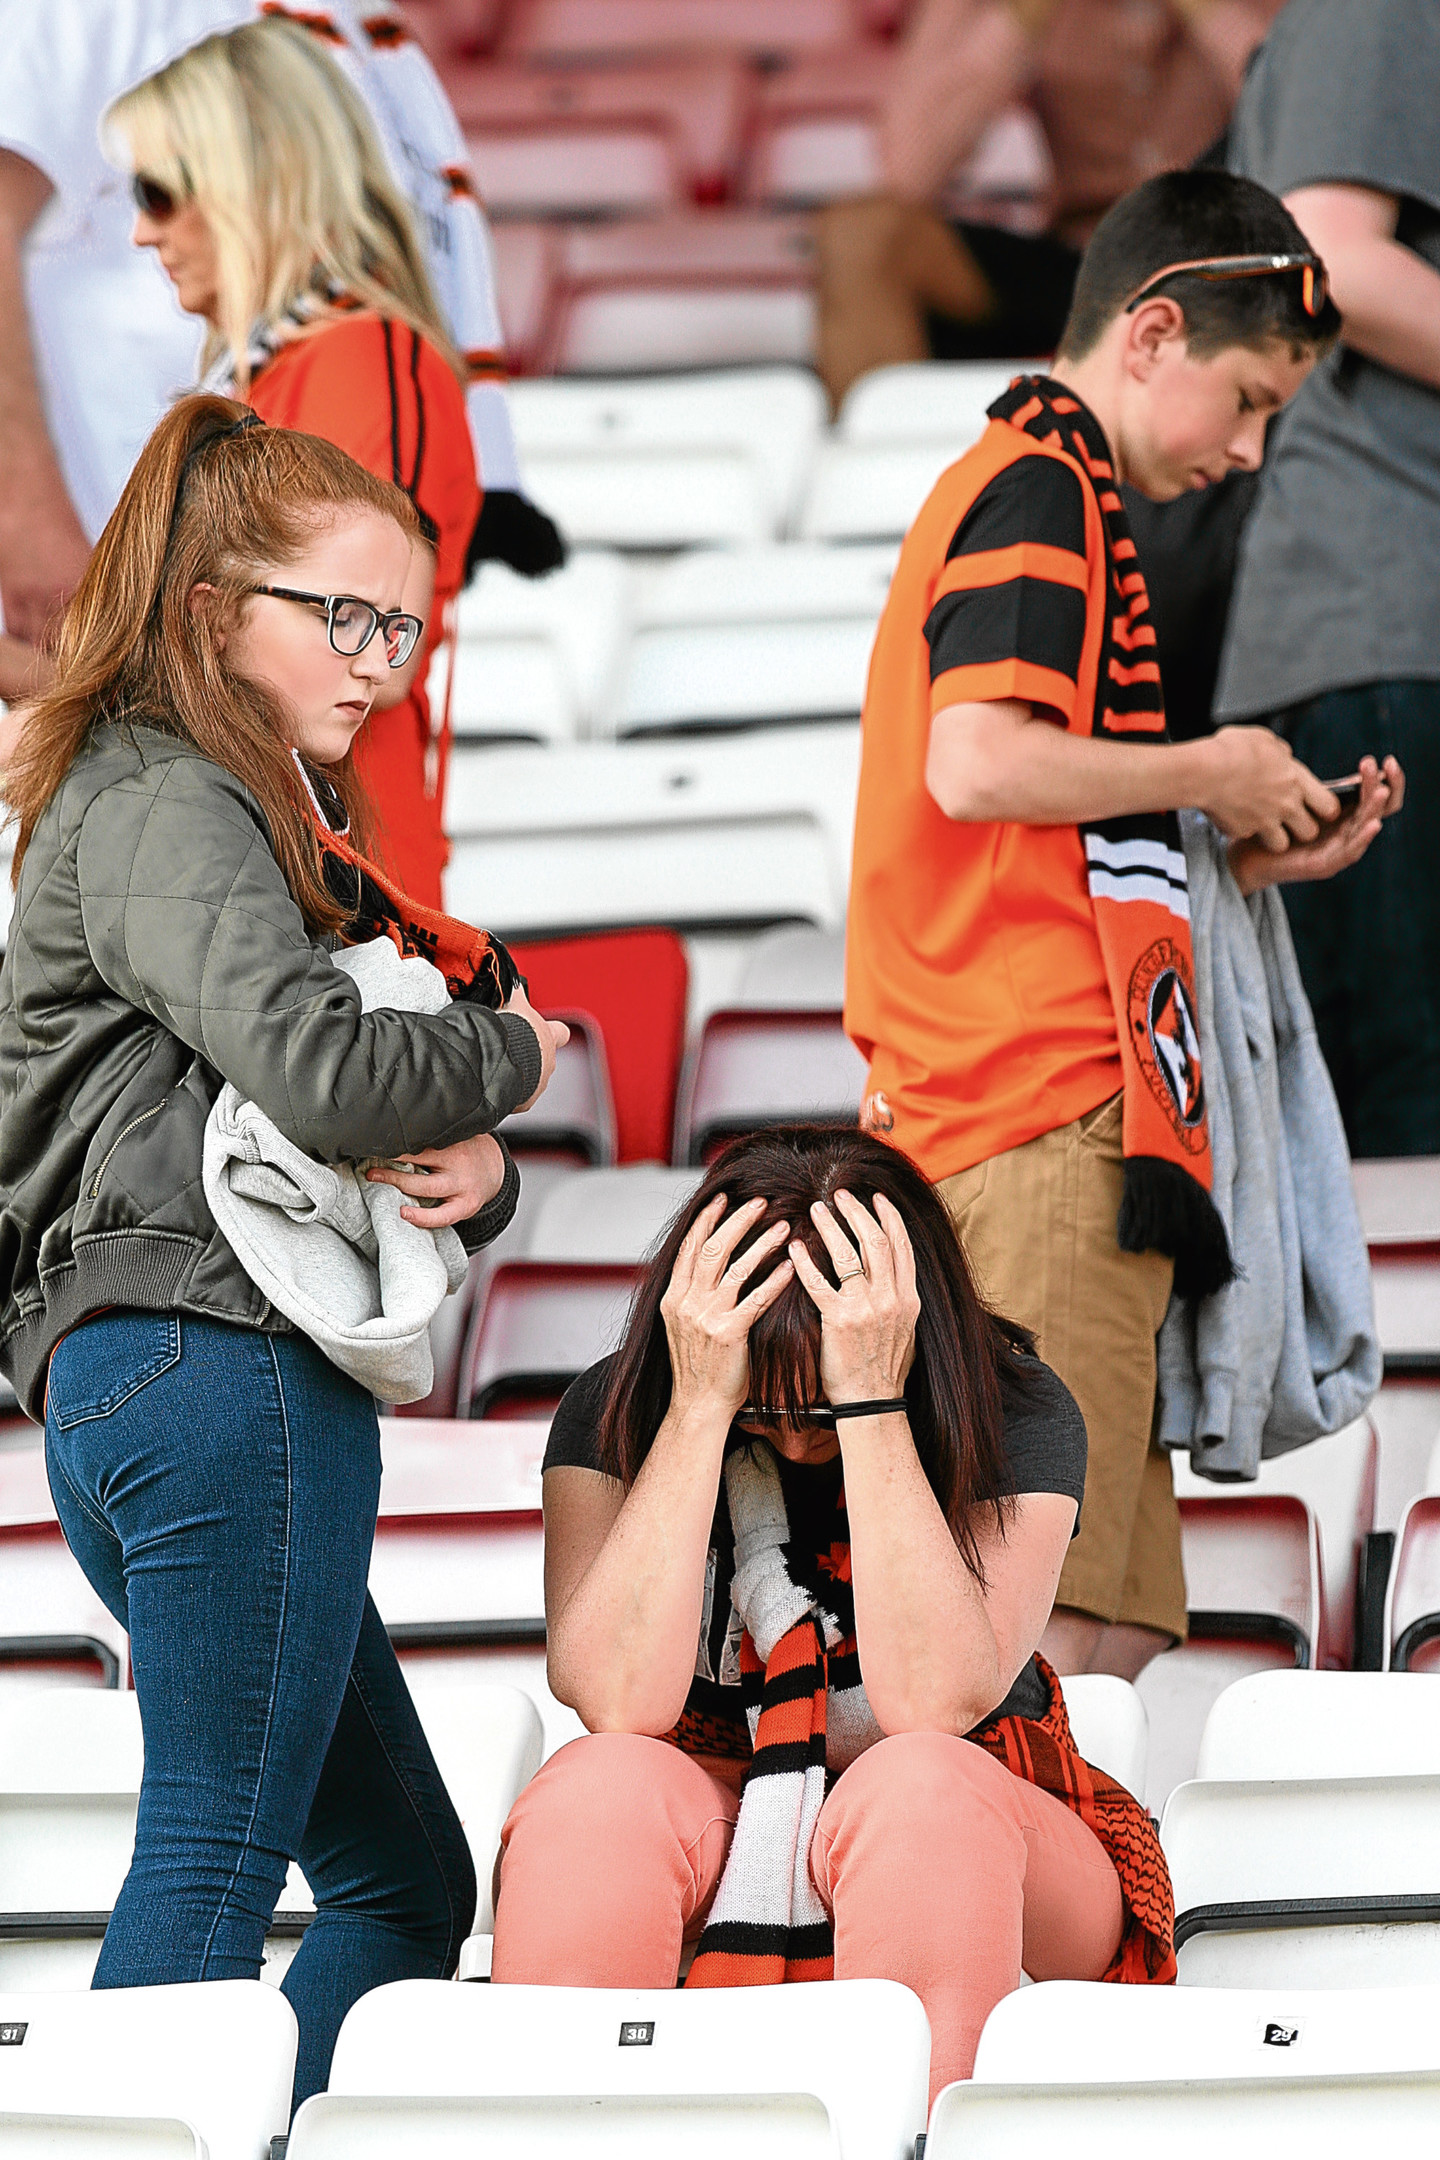 Courier/Tele News. Sport/News story. Hamilton V Dundee United in the Play off final. Dejected fan and player pics. Picture shows; dejected fans at full time whistle, Hamilton V Dundee United. Sunday, 28th May, 2017.